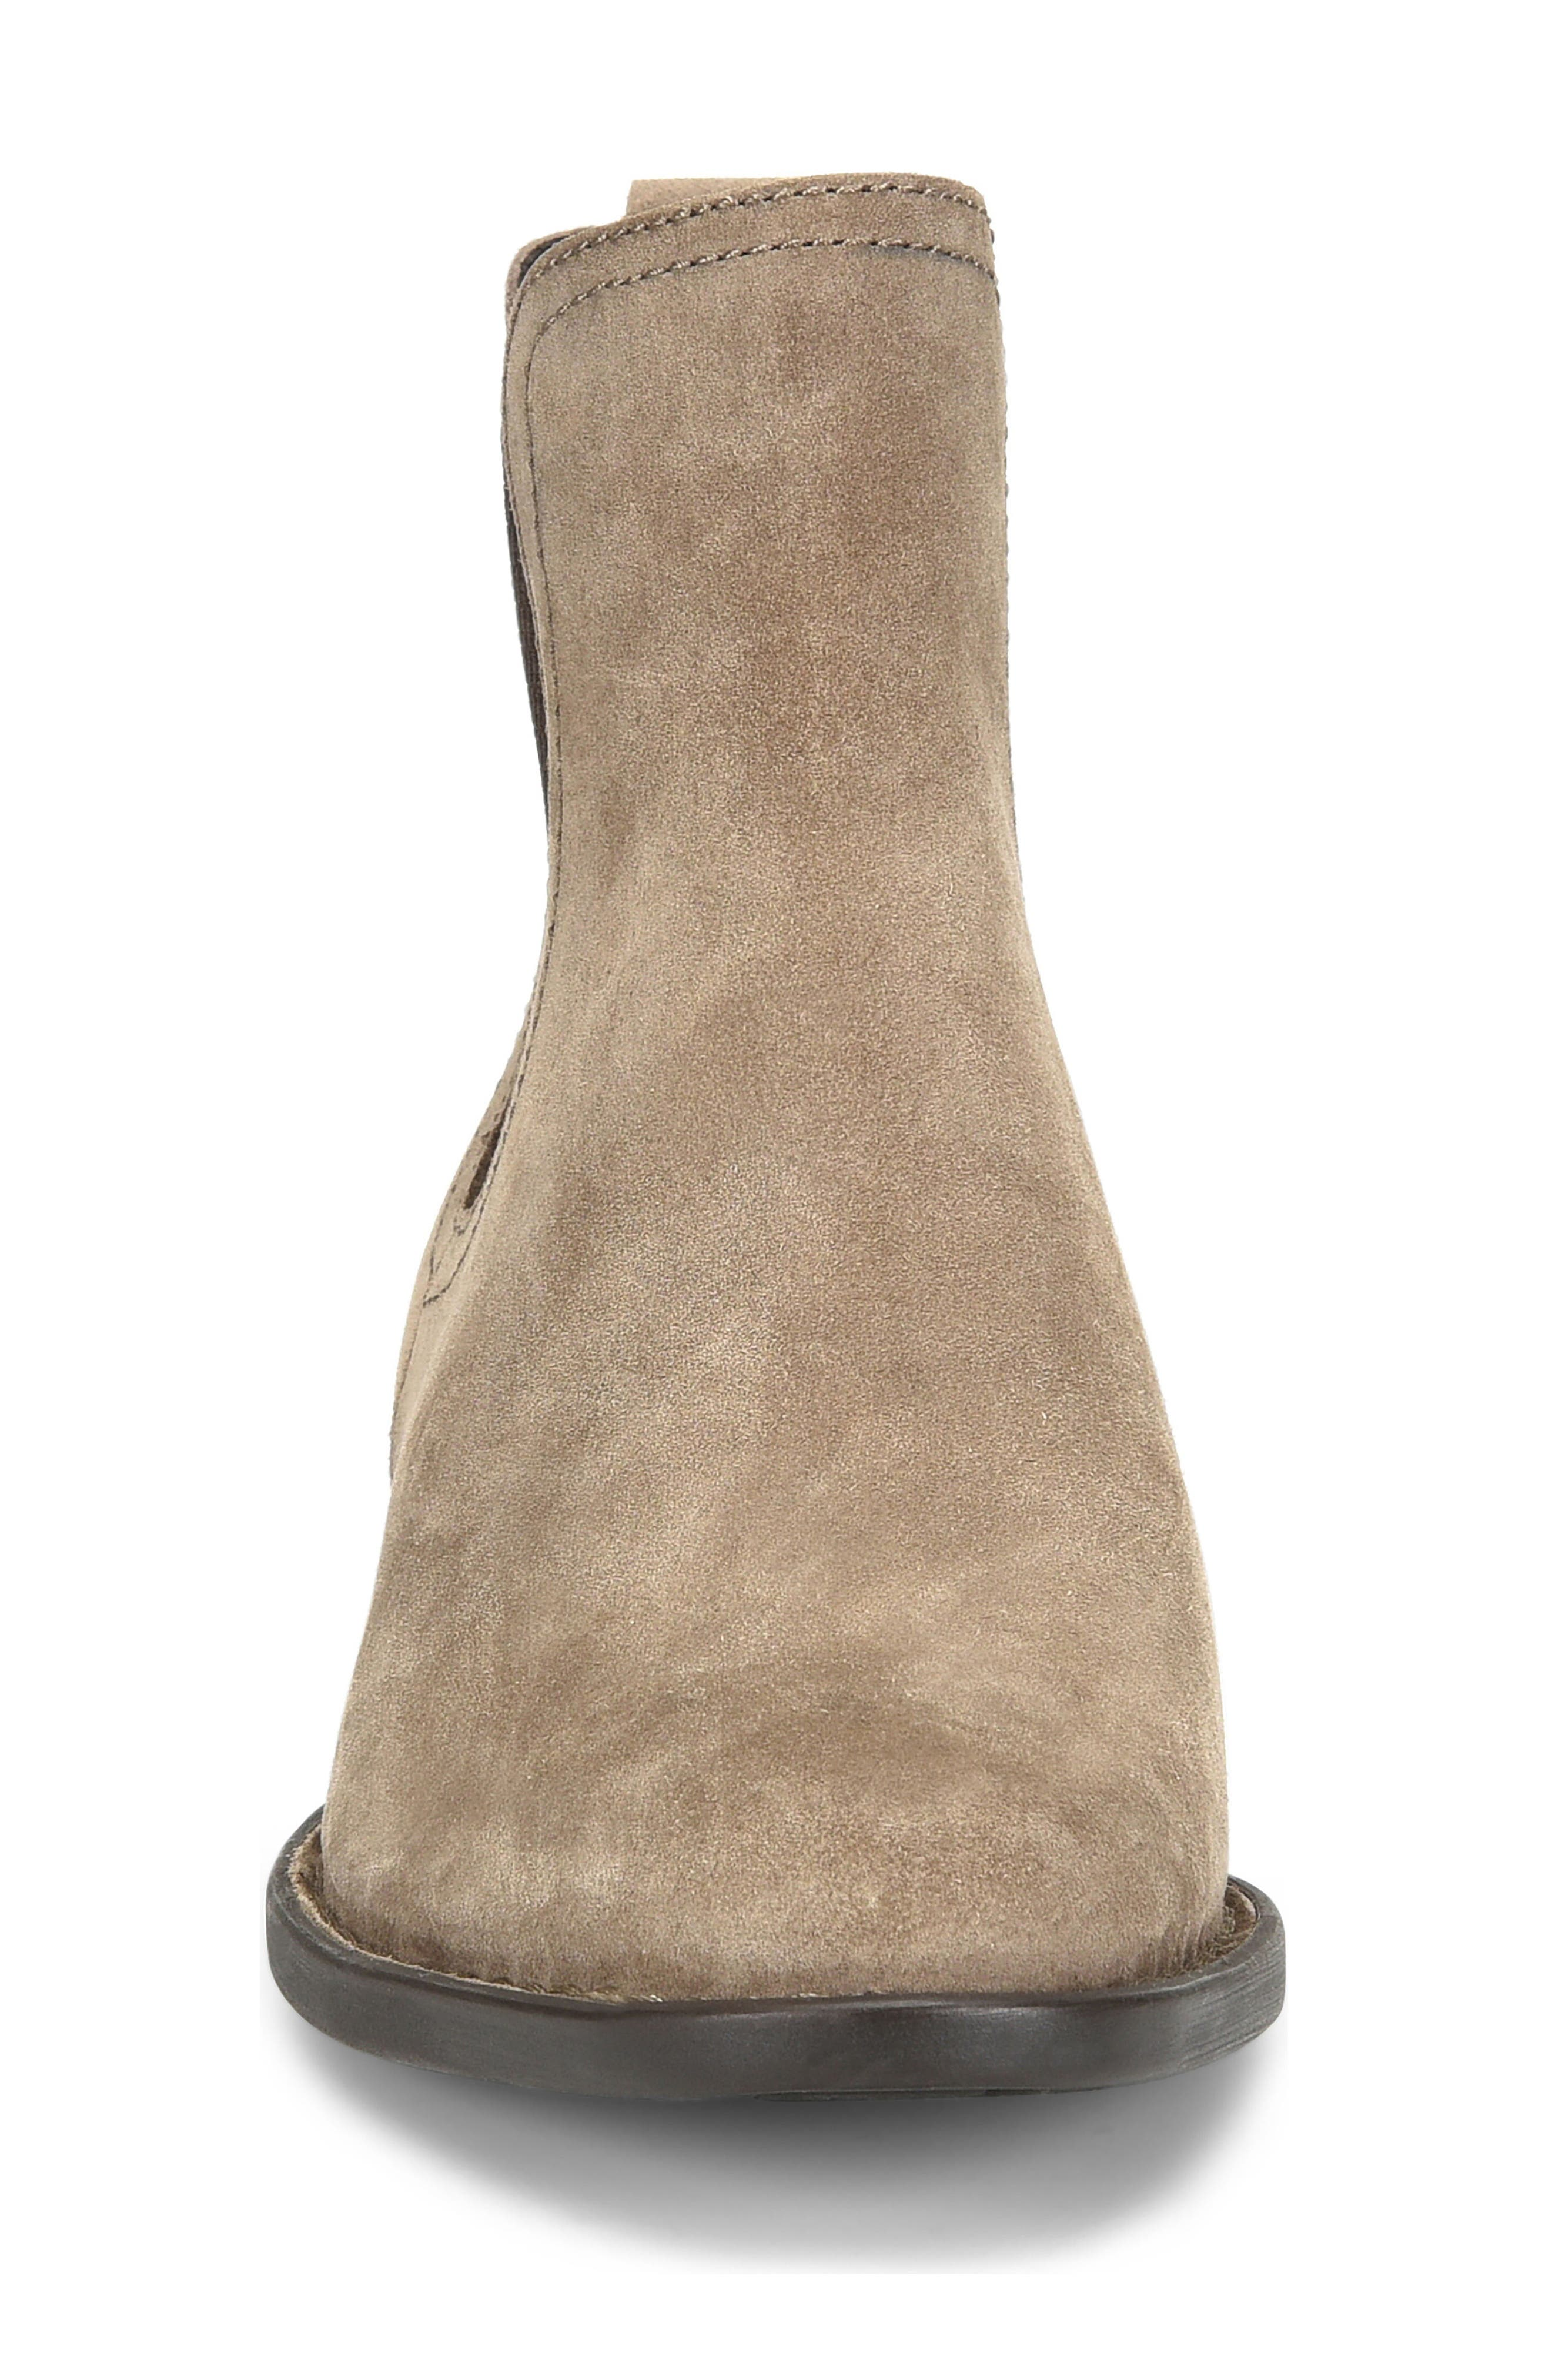 Casco Chelsea Boot,                             Alternate thumbnail 4, color,                             Taupe Suede